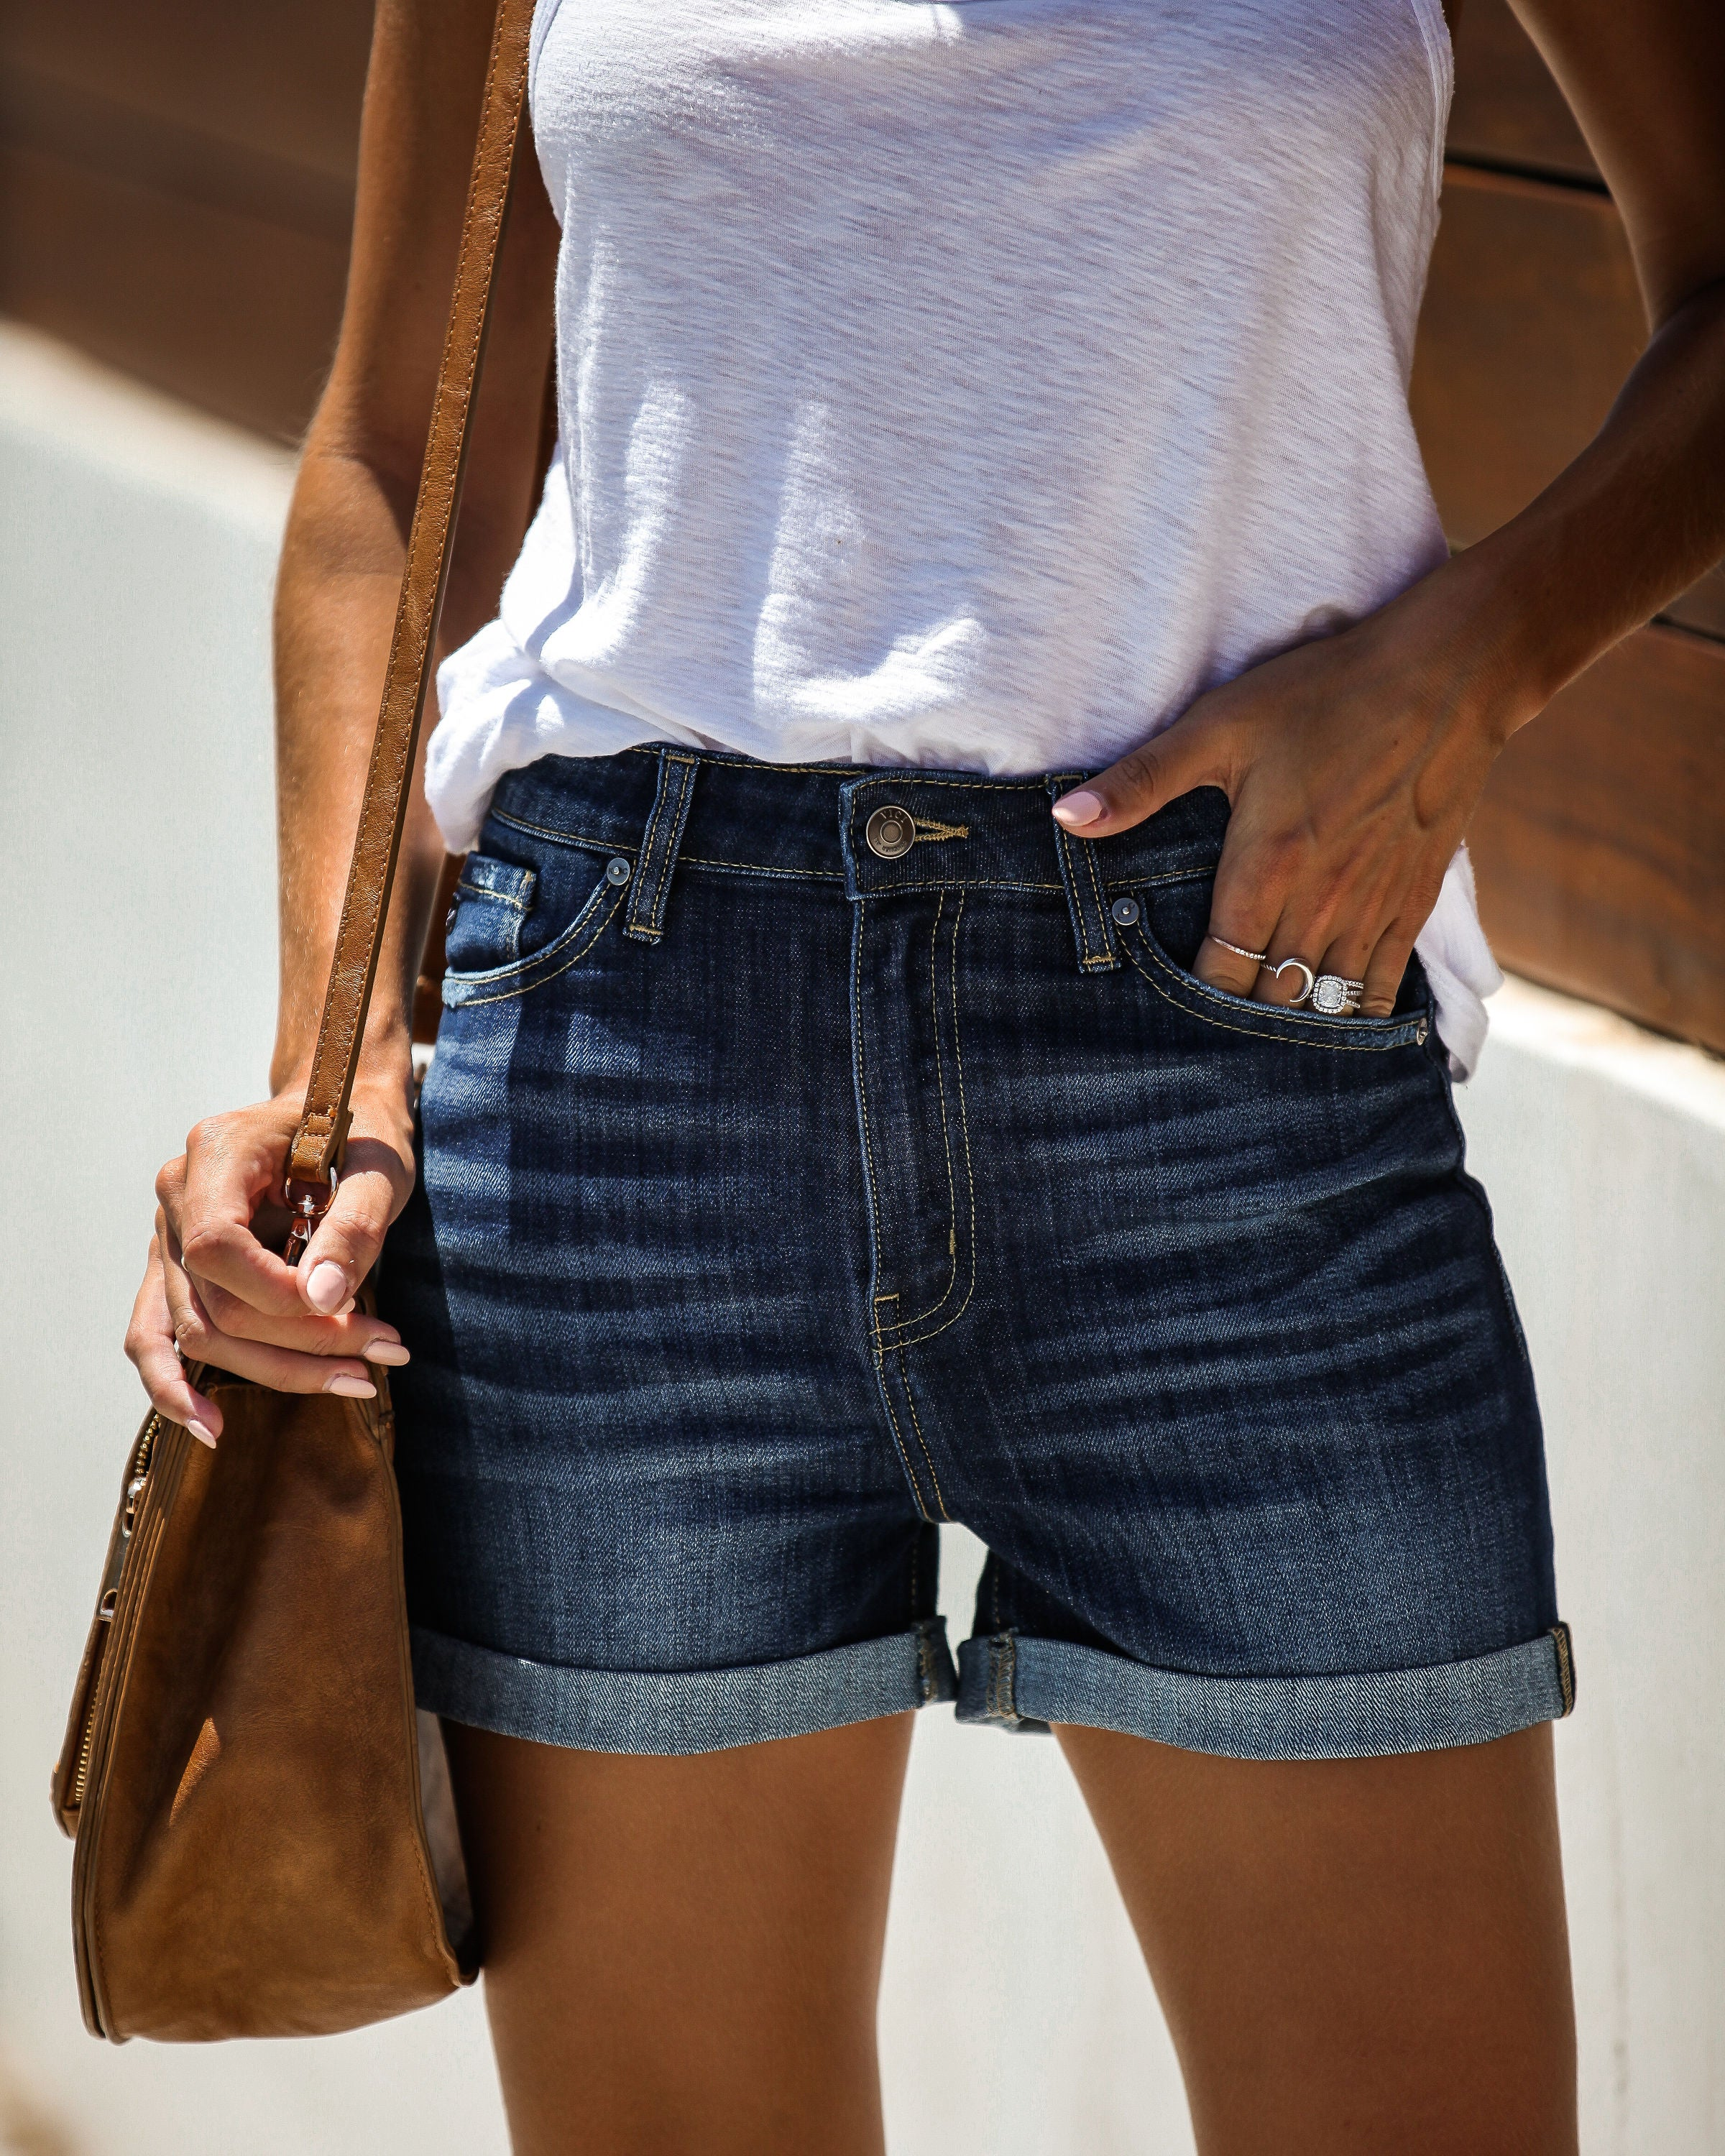 981a140c4 Detail Product. FILTER ← Home - BESTSELLERS - 24/7 High Rise Cuffed Denim  Shorts